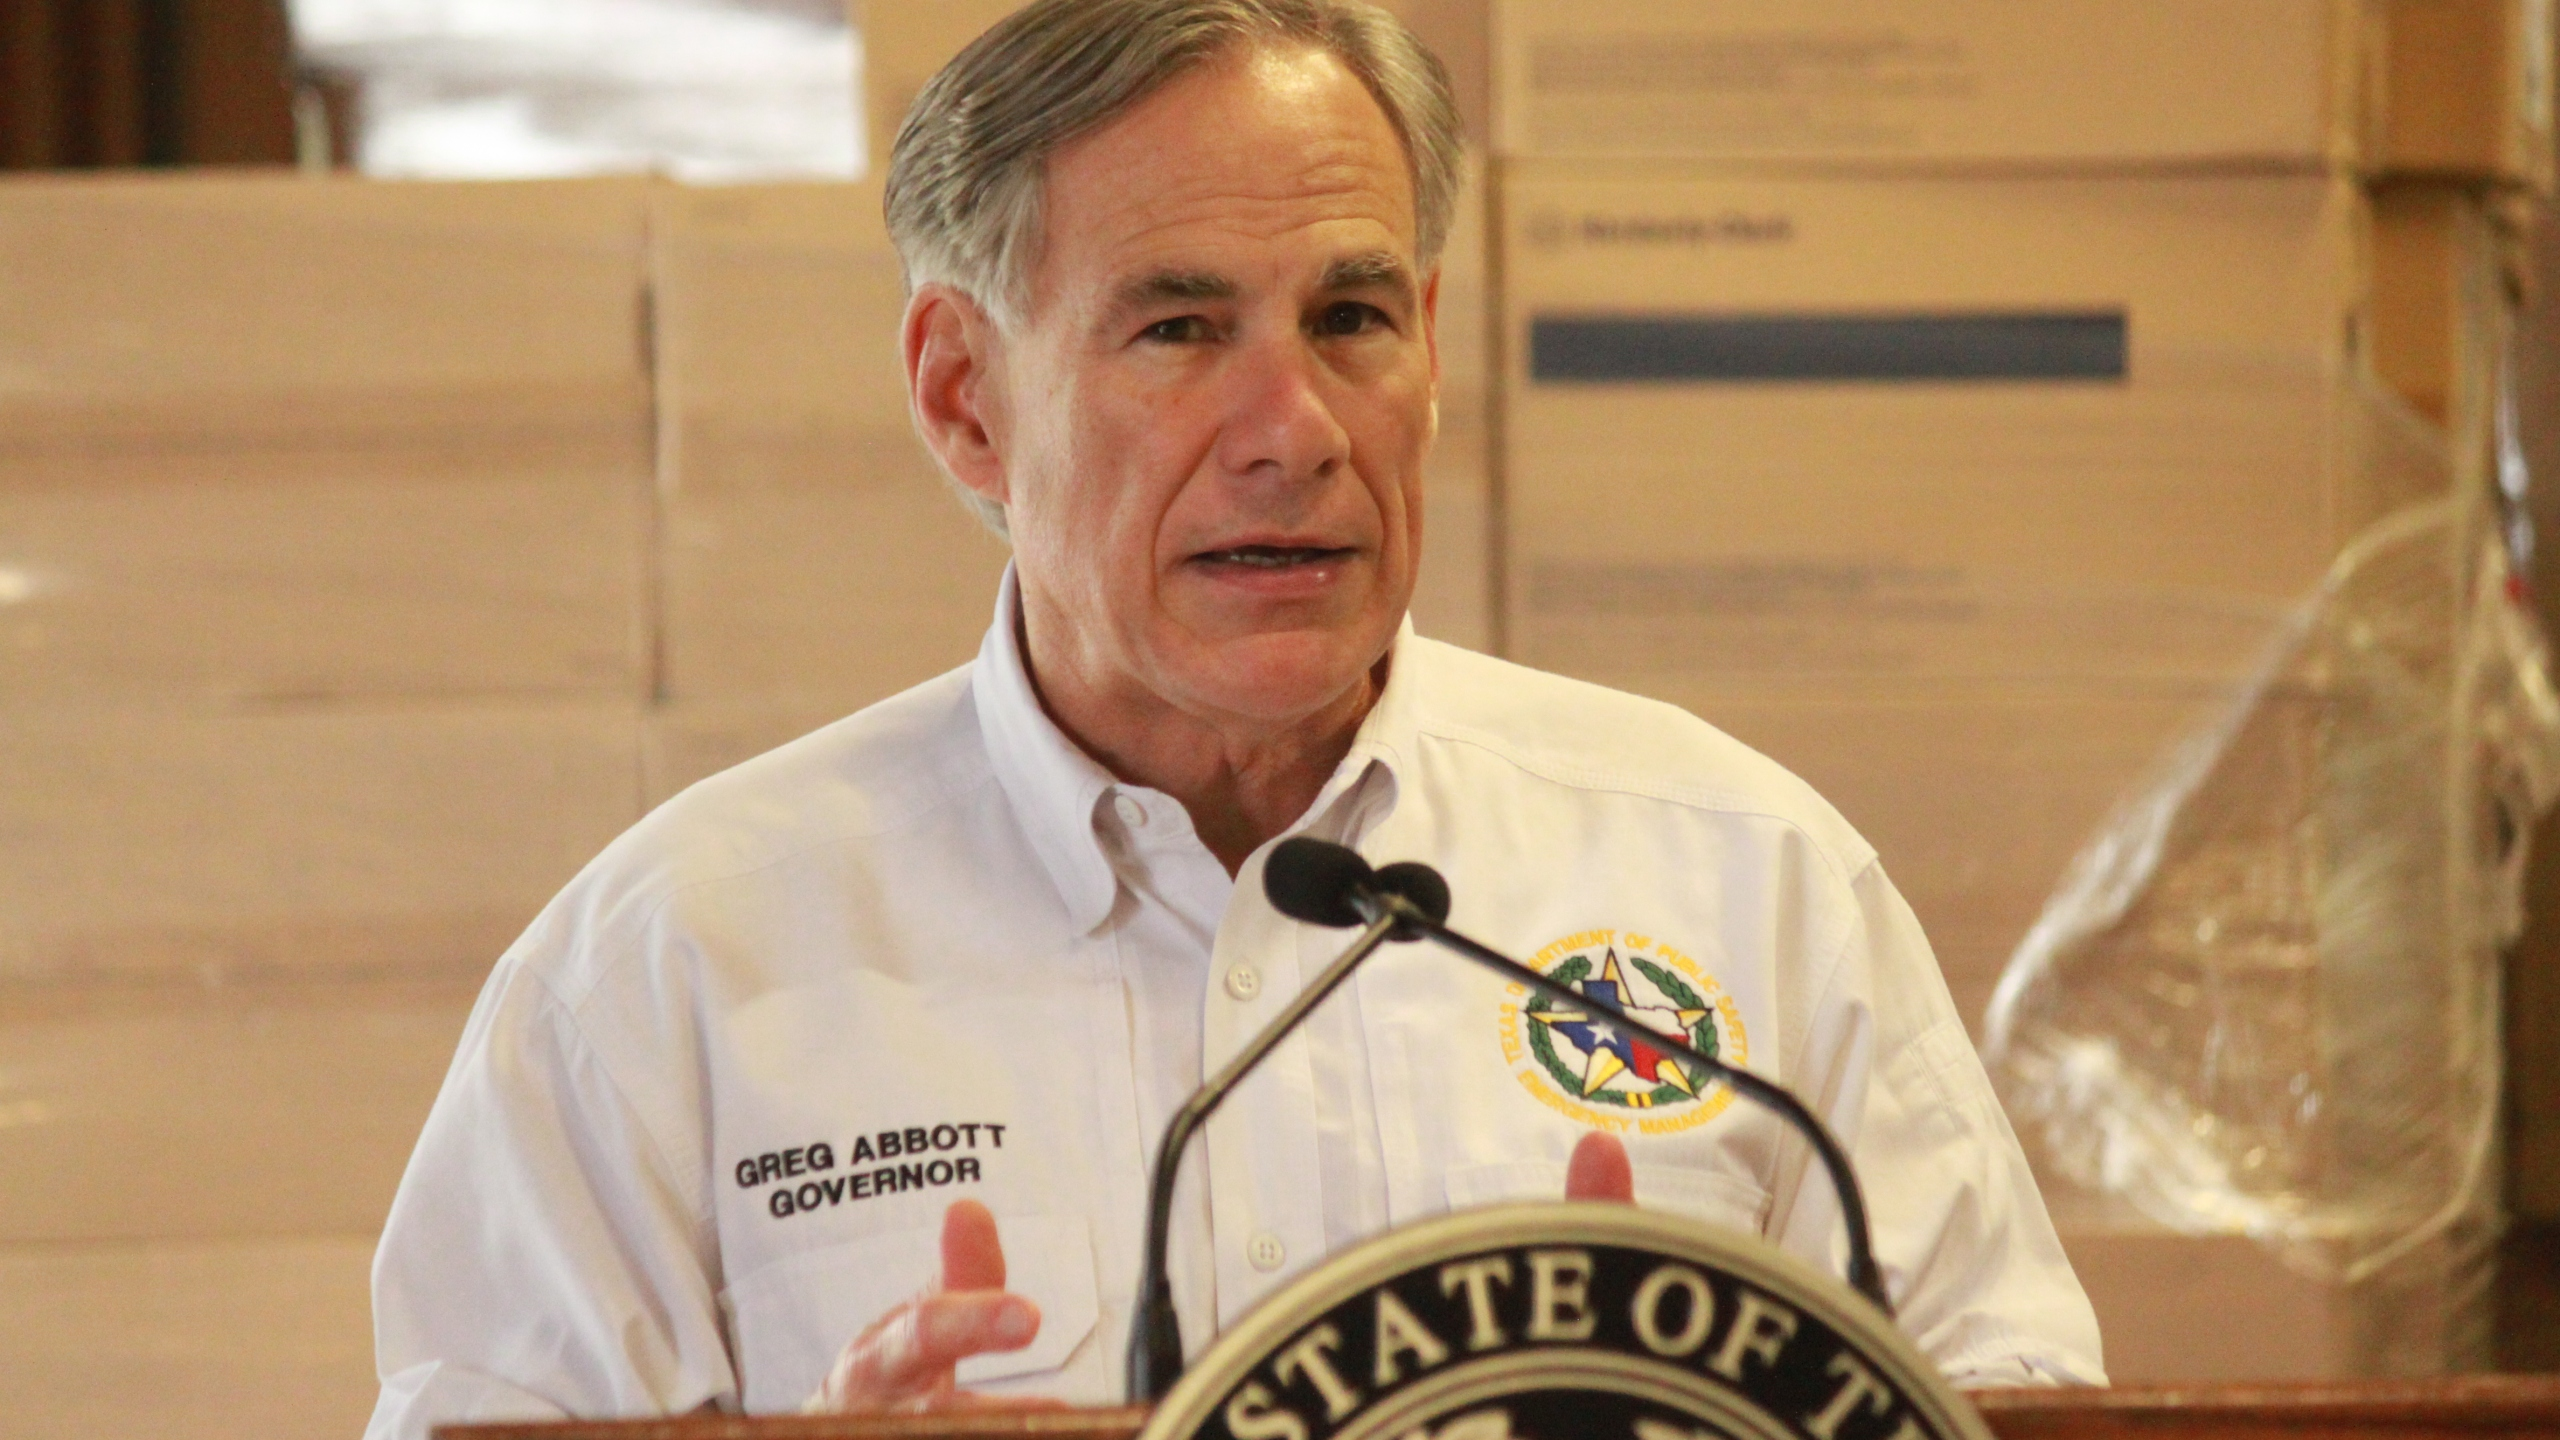 Texas Governor Greg Abbott PPE press conference